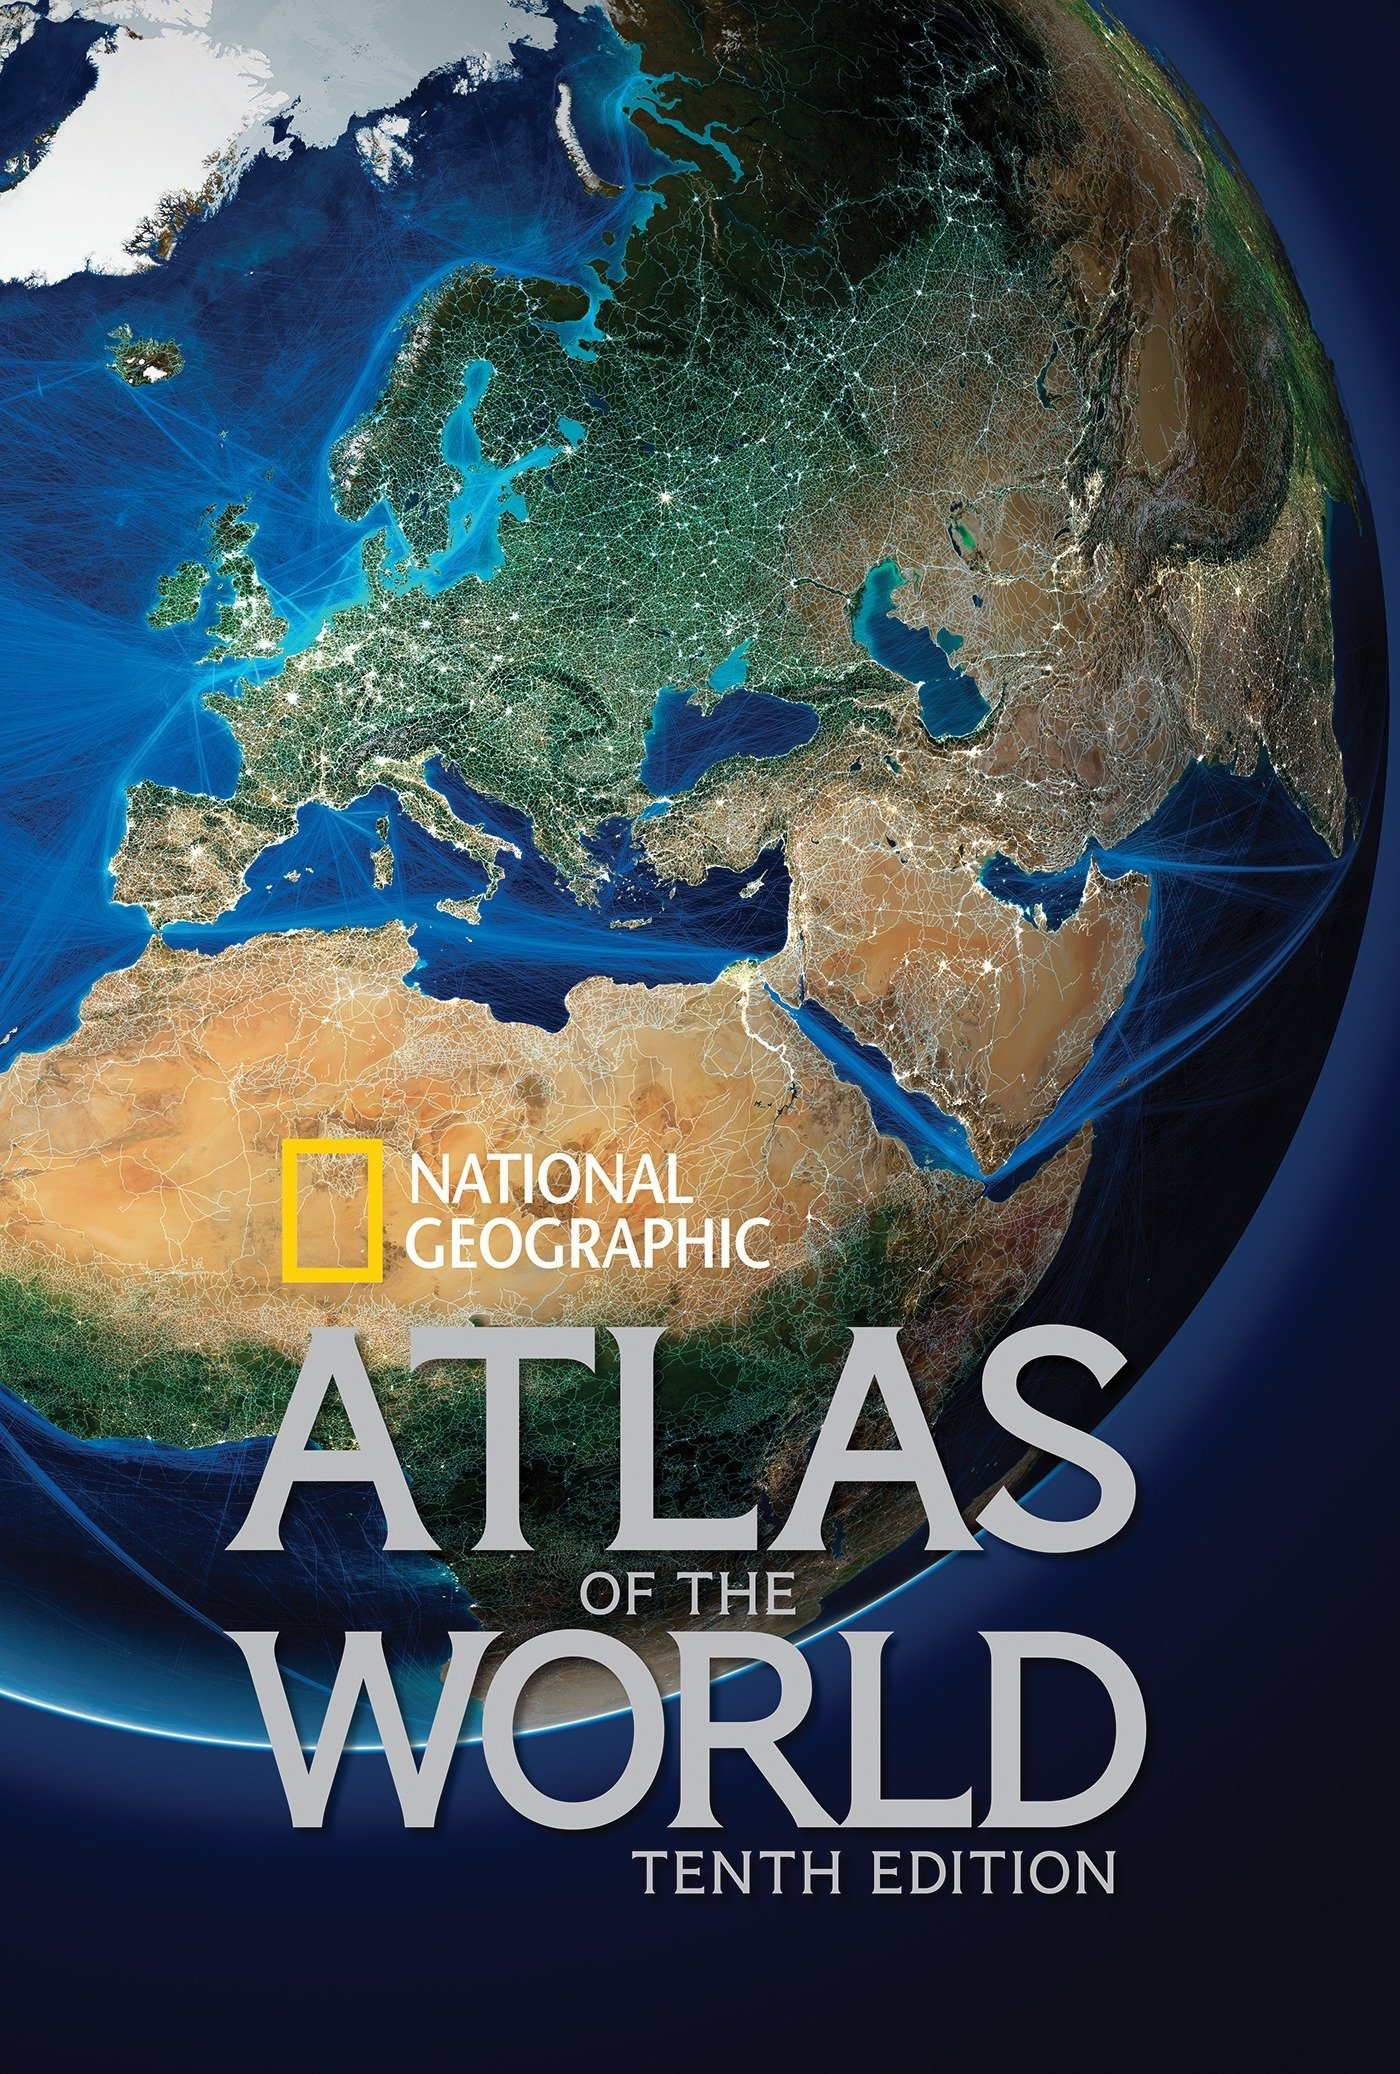 National Geographic Atlas of the World, Tenth Edition by National Geographic Society